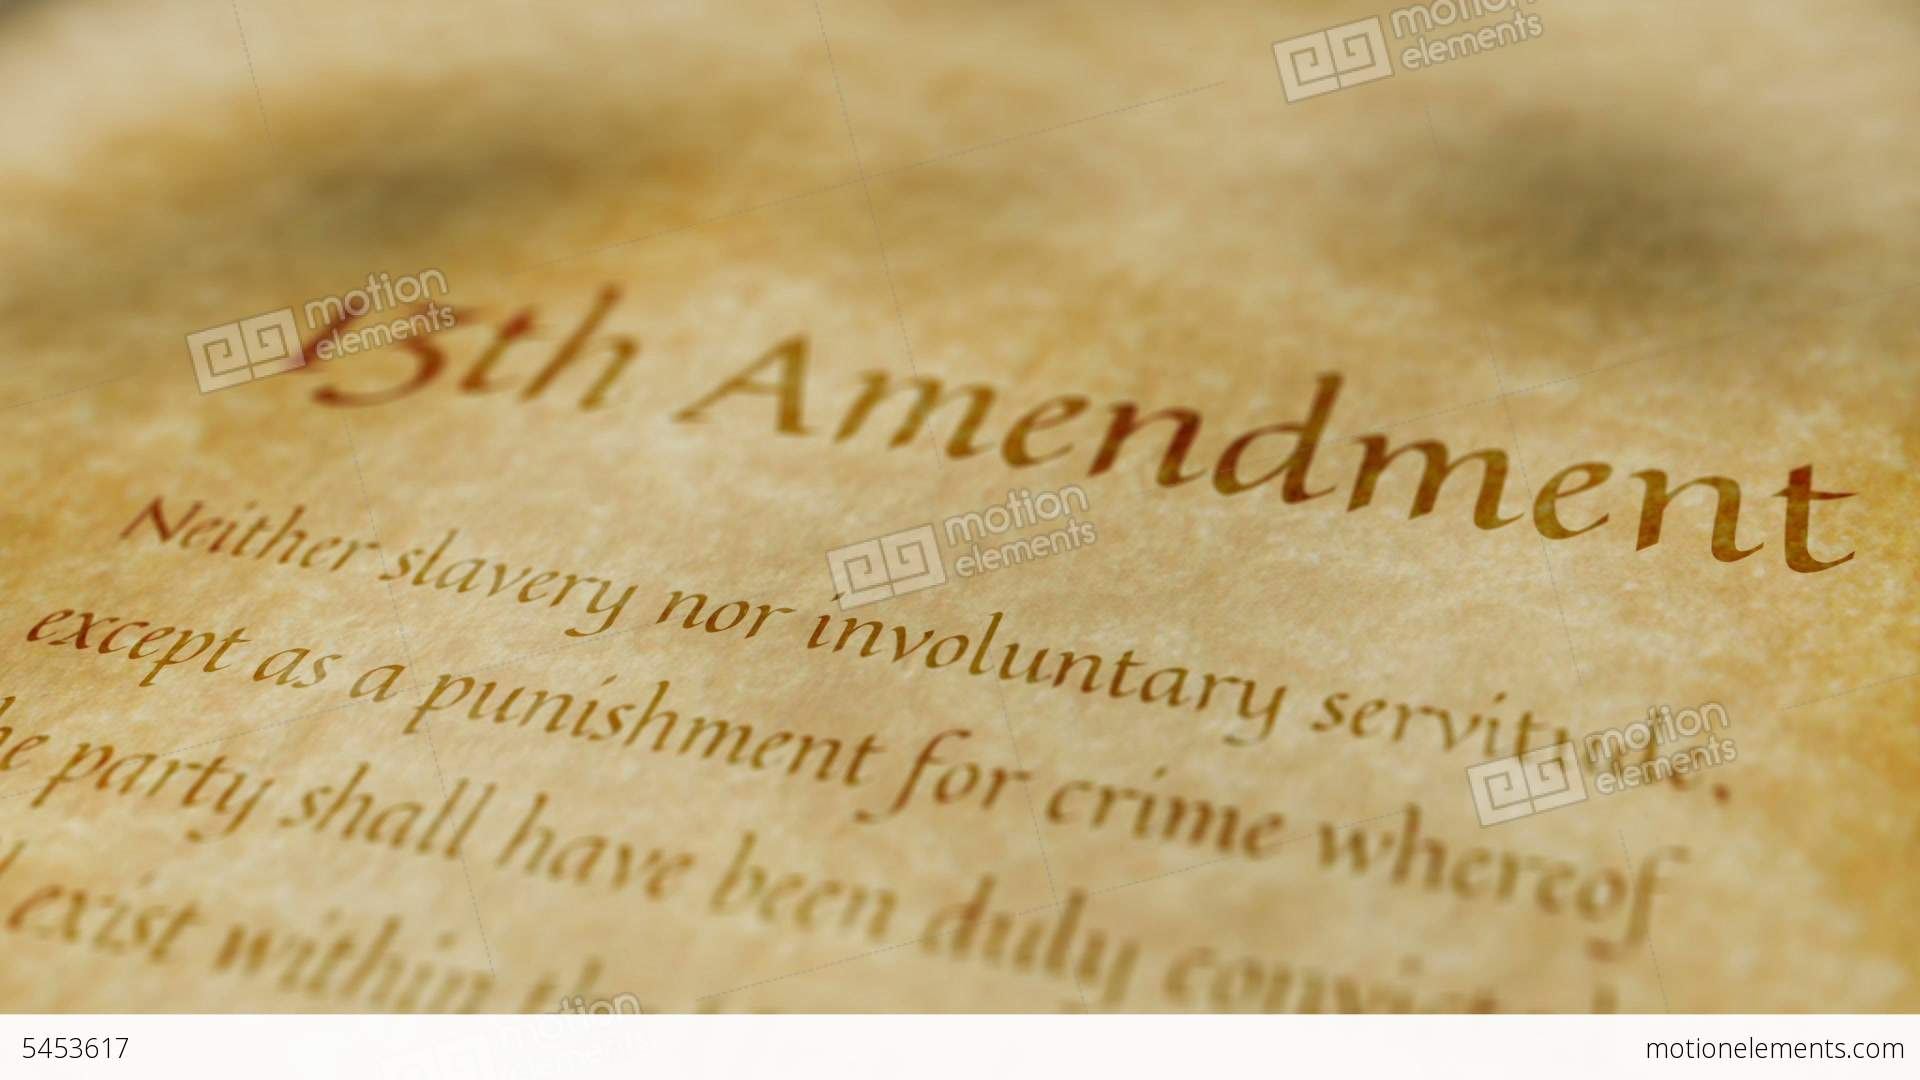 the 13th amendment Definition of 13th amendment in the legal dictionary - by free online english dictionary and encyclopedia what is 13th amendment meaning of 13th amendment as a.